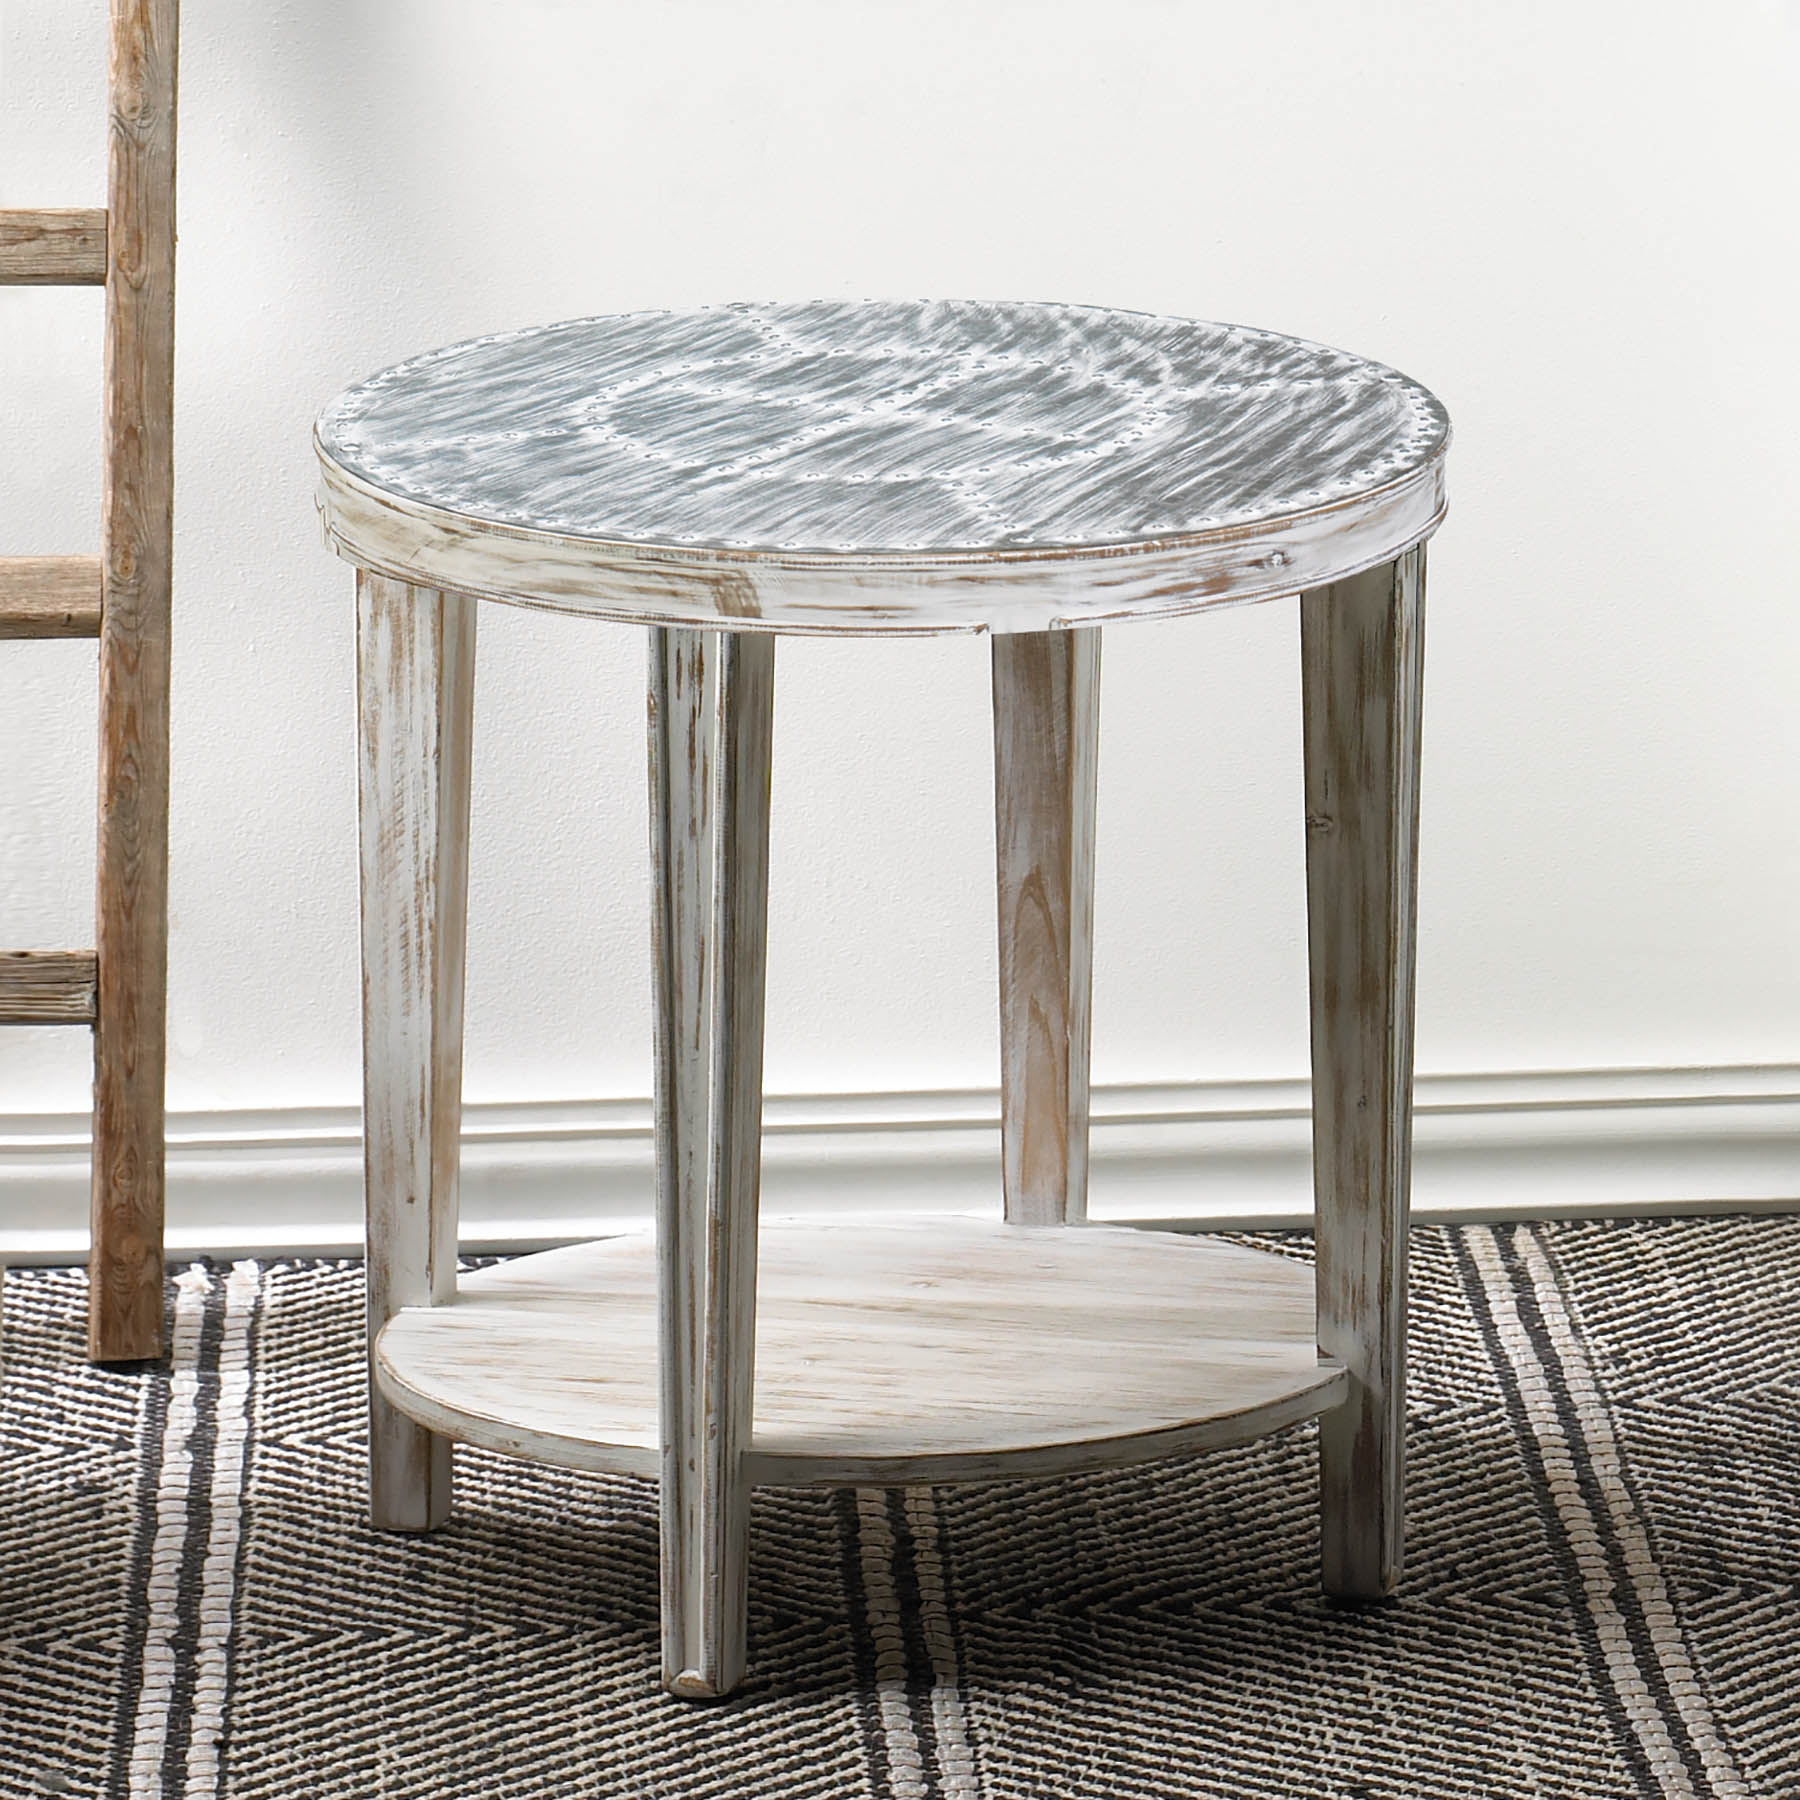 Home Decor, Tables - Drop shipping to your customers